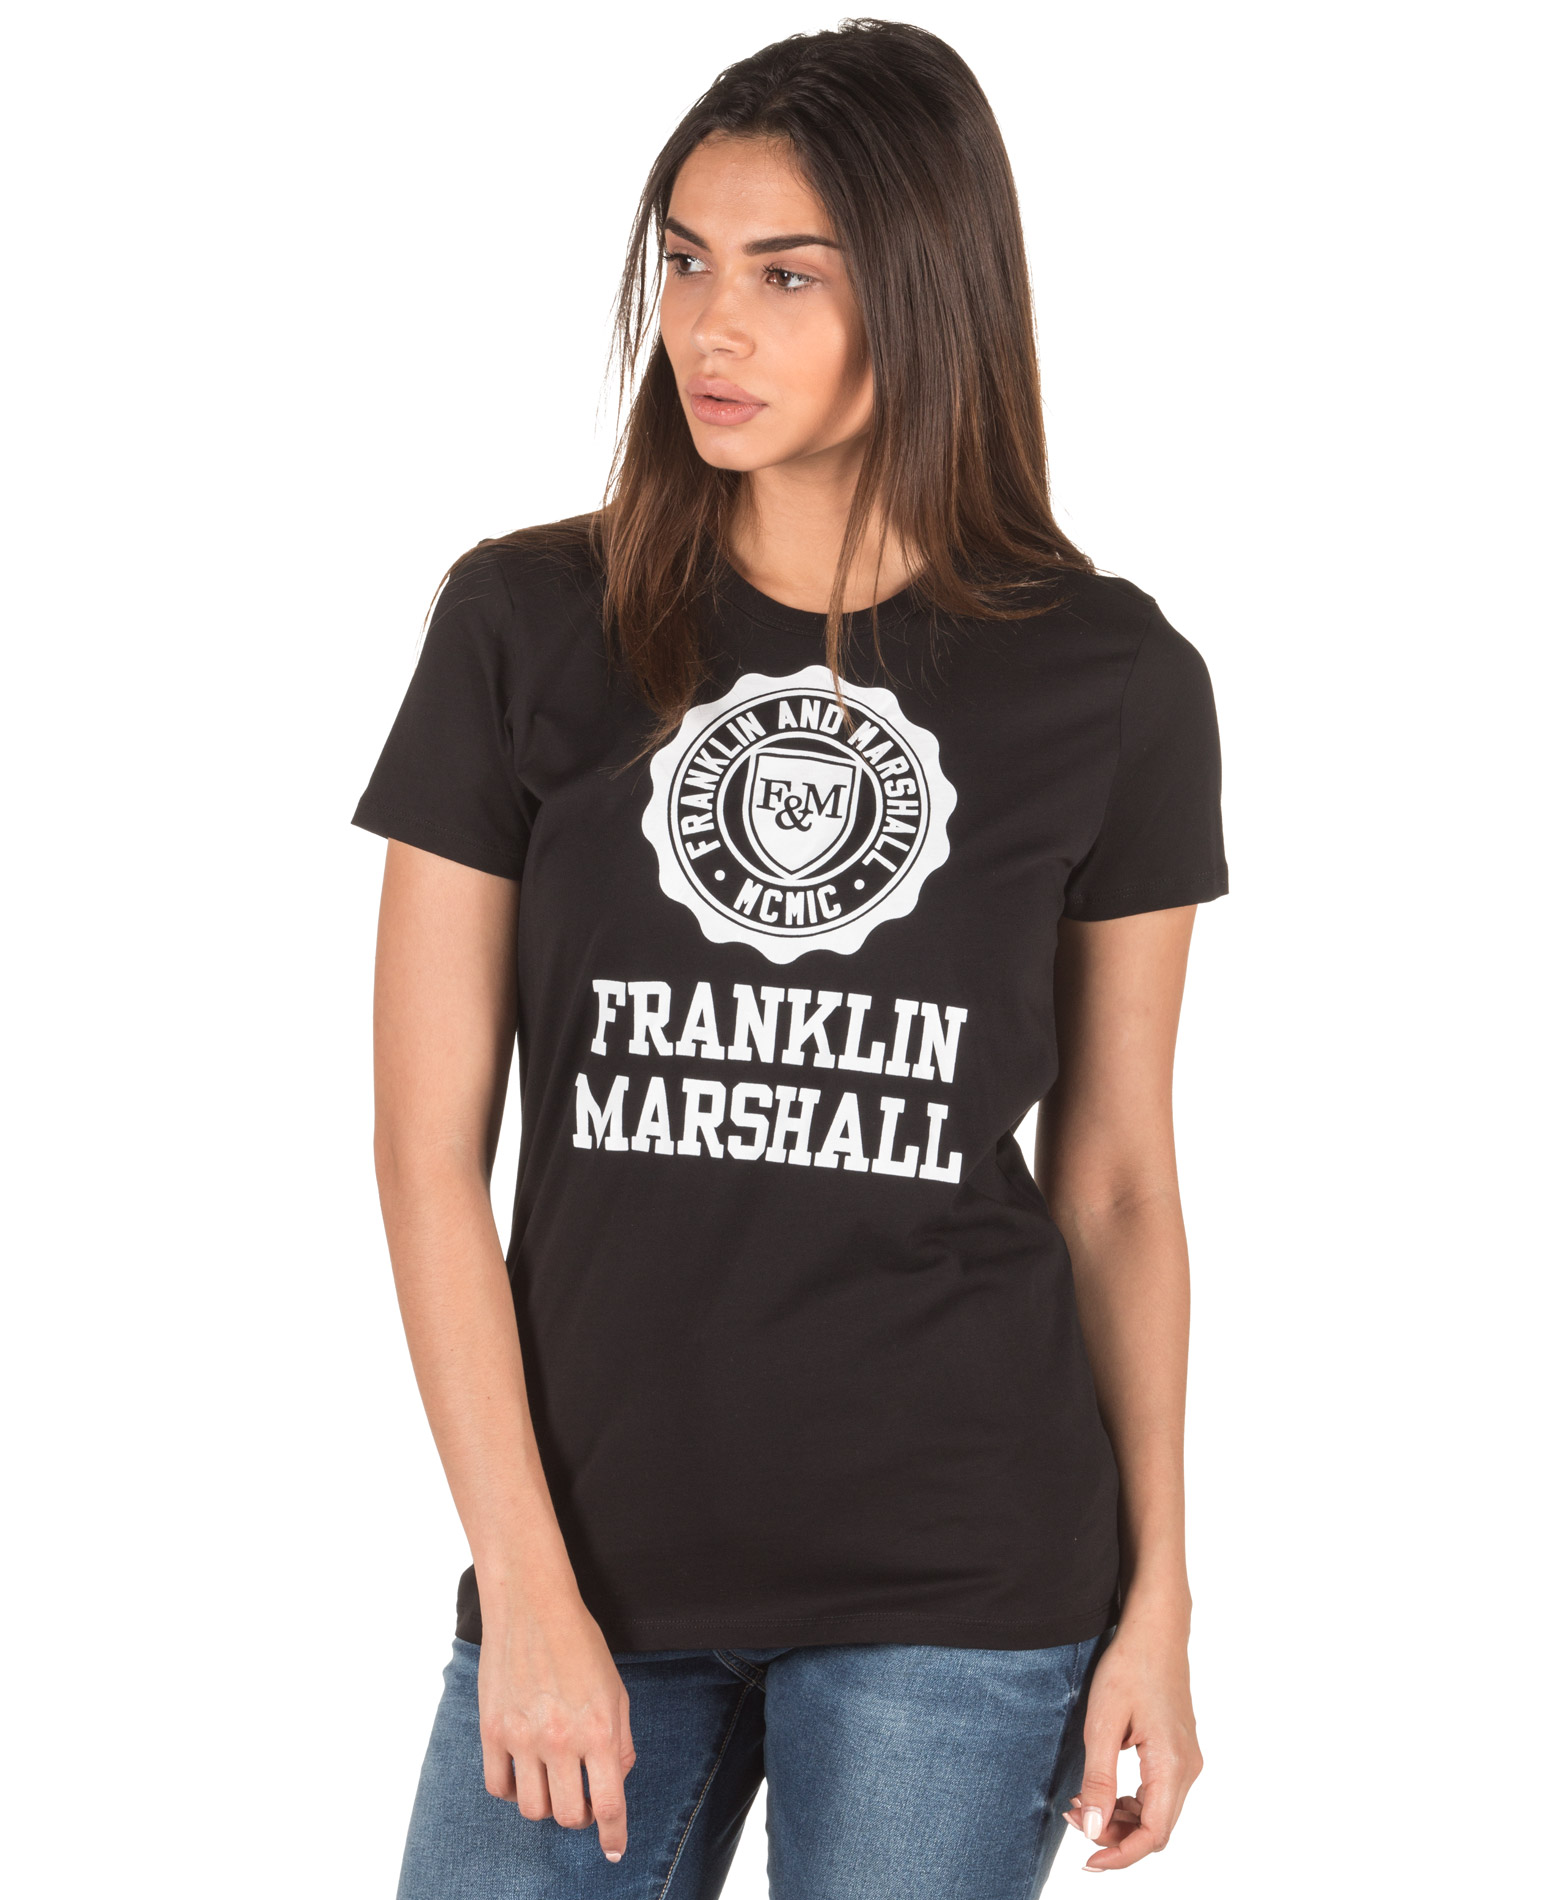 ΕΝΔΥΜΑΤΑ TShirt FRANKLIN MARSHALL TSWF586AN-0021 Μαύρο